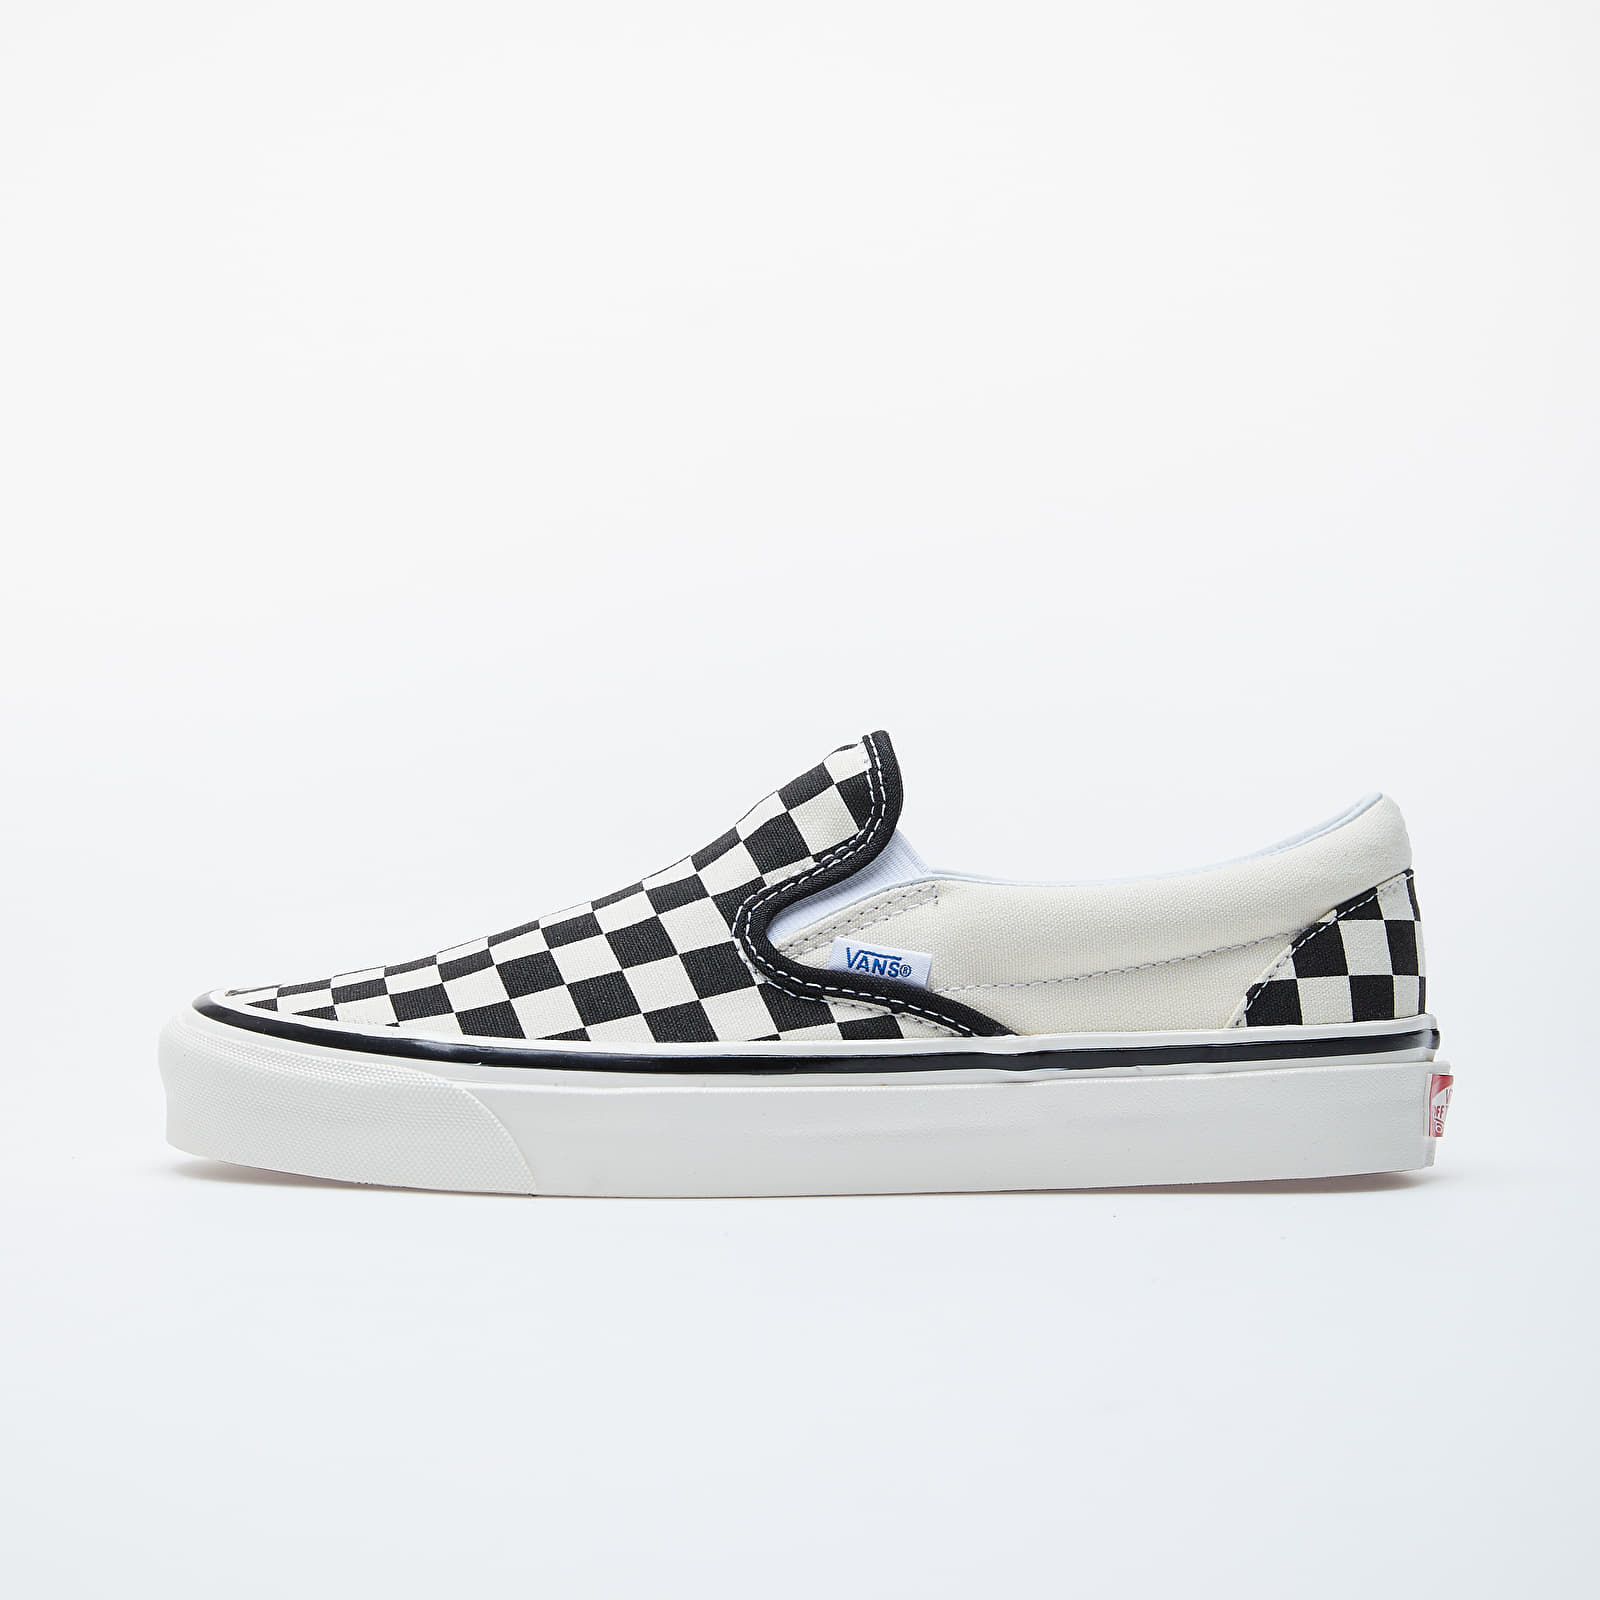 Zapatillas Hombre Vans Classic Slip-On 98 DX (Anaheim Factory) Checkerboard